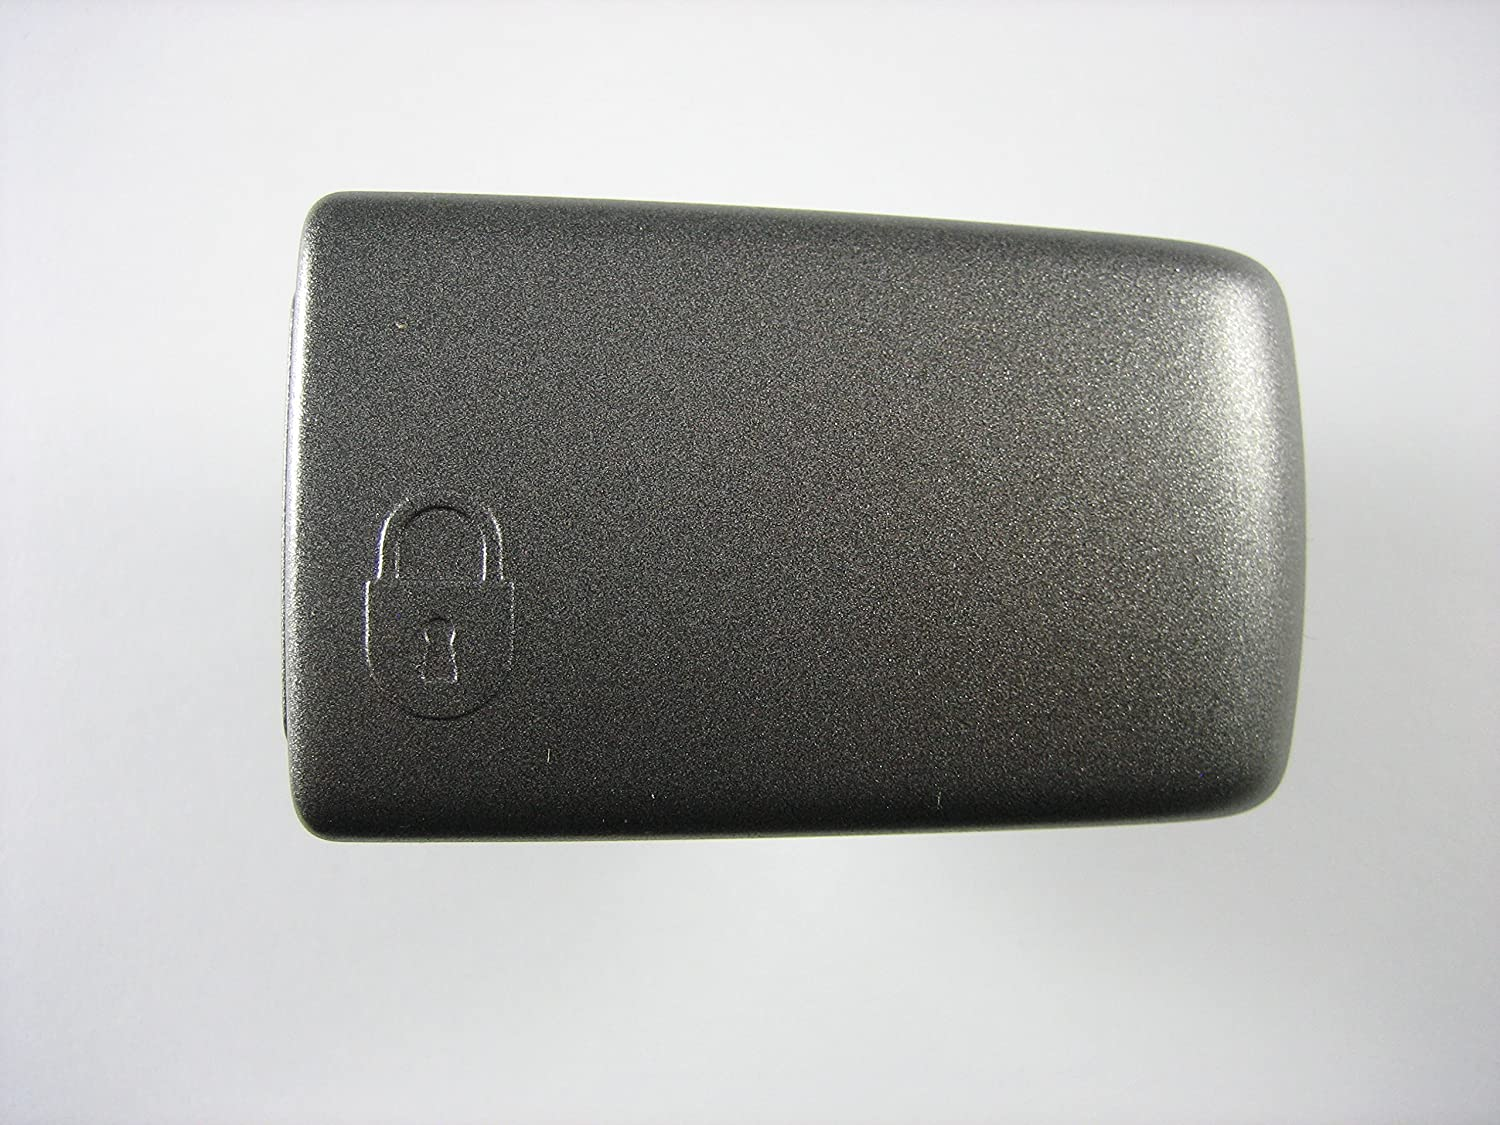 Genuine Land Rover Left Front Door Handle Cap in Tungsten Gray